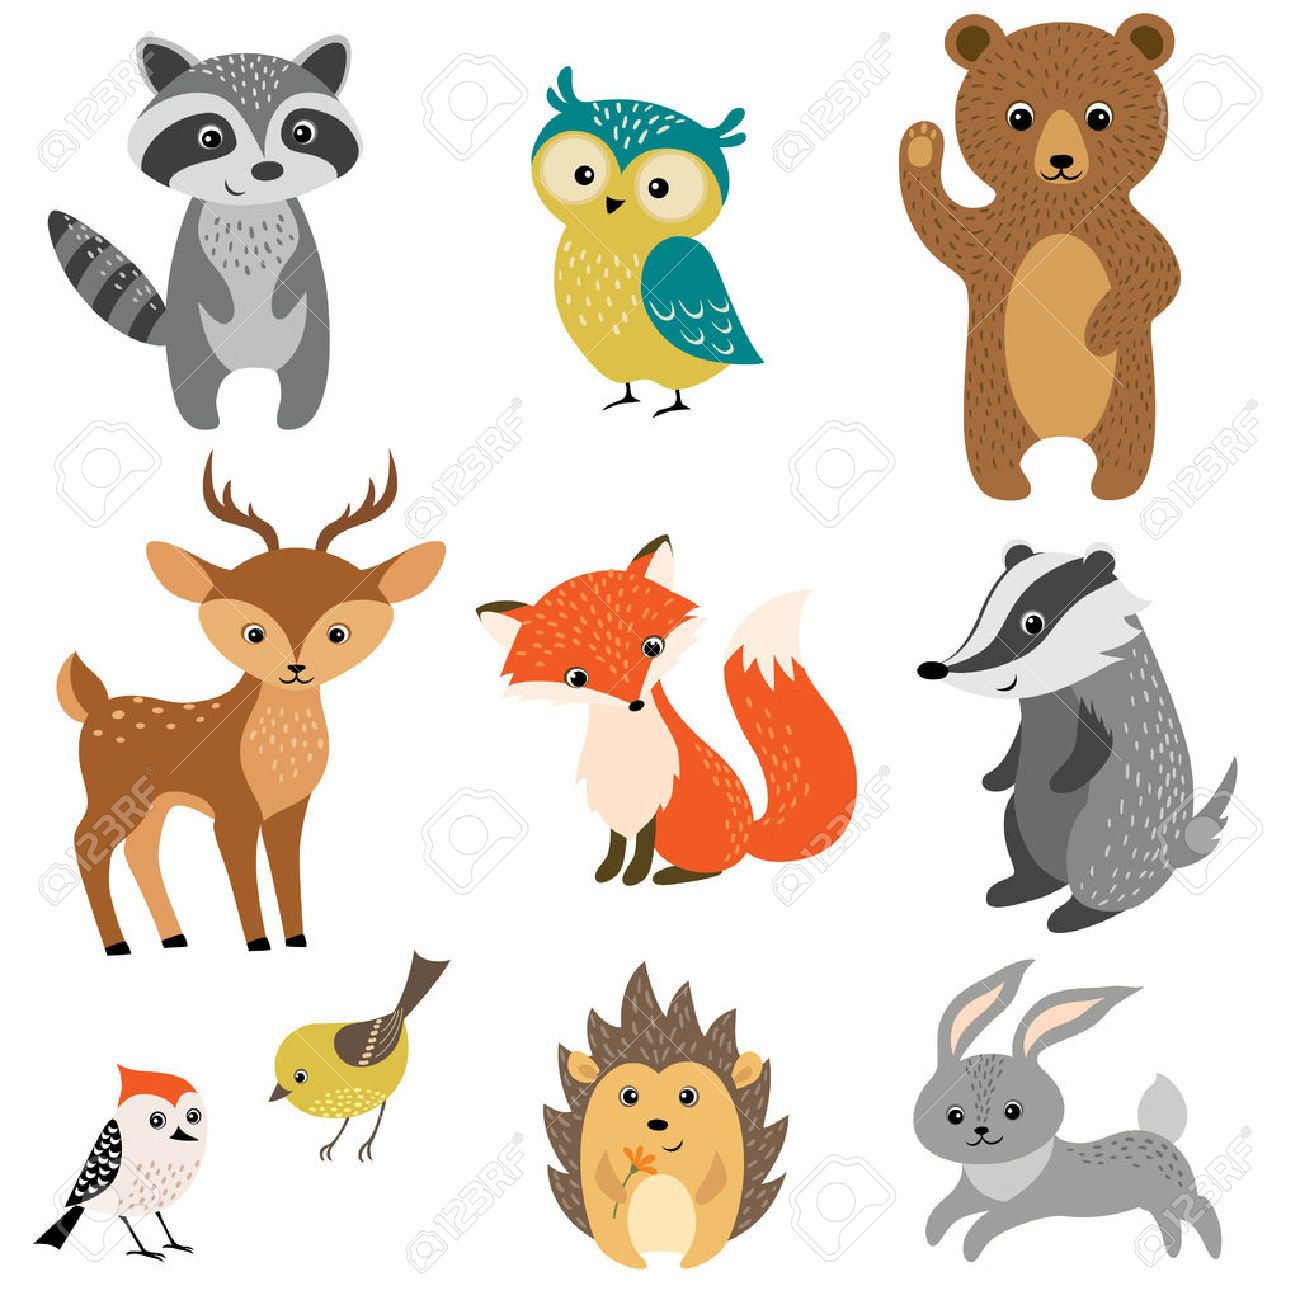 Woodland Stock Vector Illustration And Royalty Free Woodland Clipart Baby Animal Drawings Forest Animals Illustration Animal Stickers